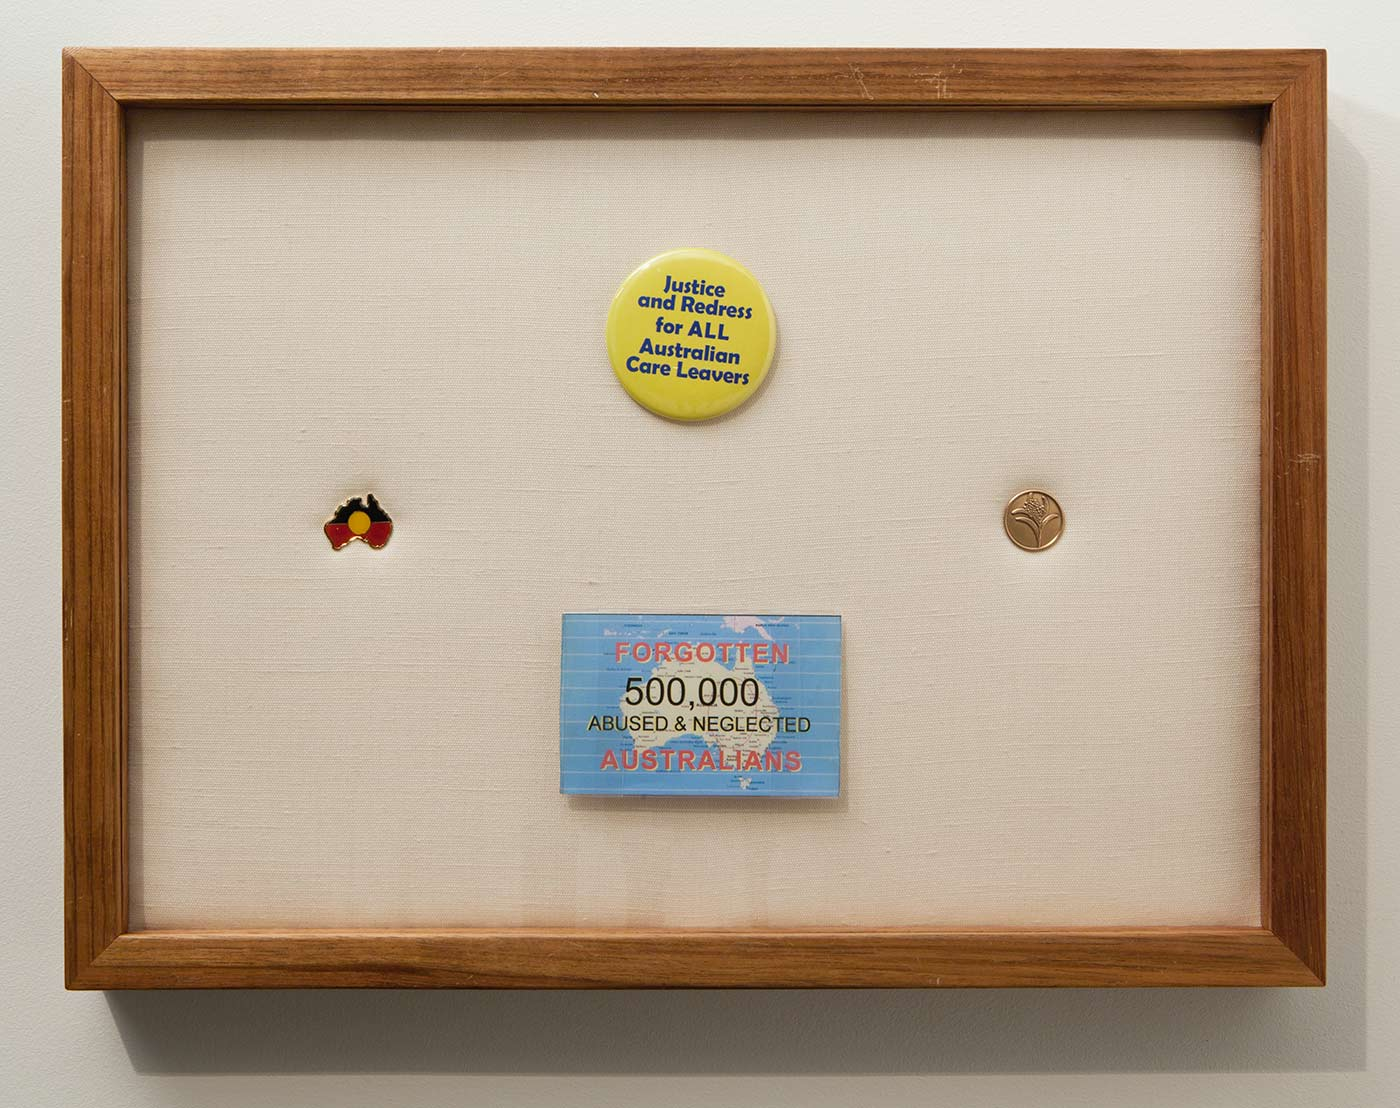 Photograph of a timber frame with four badges mounted on a soft background. An Aboriginal flag in the shape of Australia is at left, the top badge is cirucular and yellow and printed with the words 'Justice and Redress for ALL Australian Care Leavers'. A blue printed rectangular badge below reads 'FORGOTTEN / 500,000 / ABUSED & NEGLECTED / AUSTRALIANS'. A circular gold badge at right is embossed with a wattle emblem. - click to view larger image